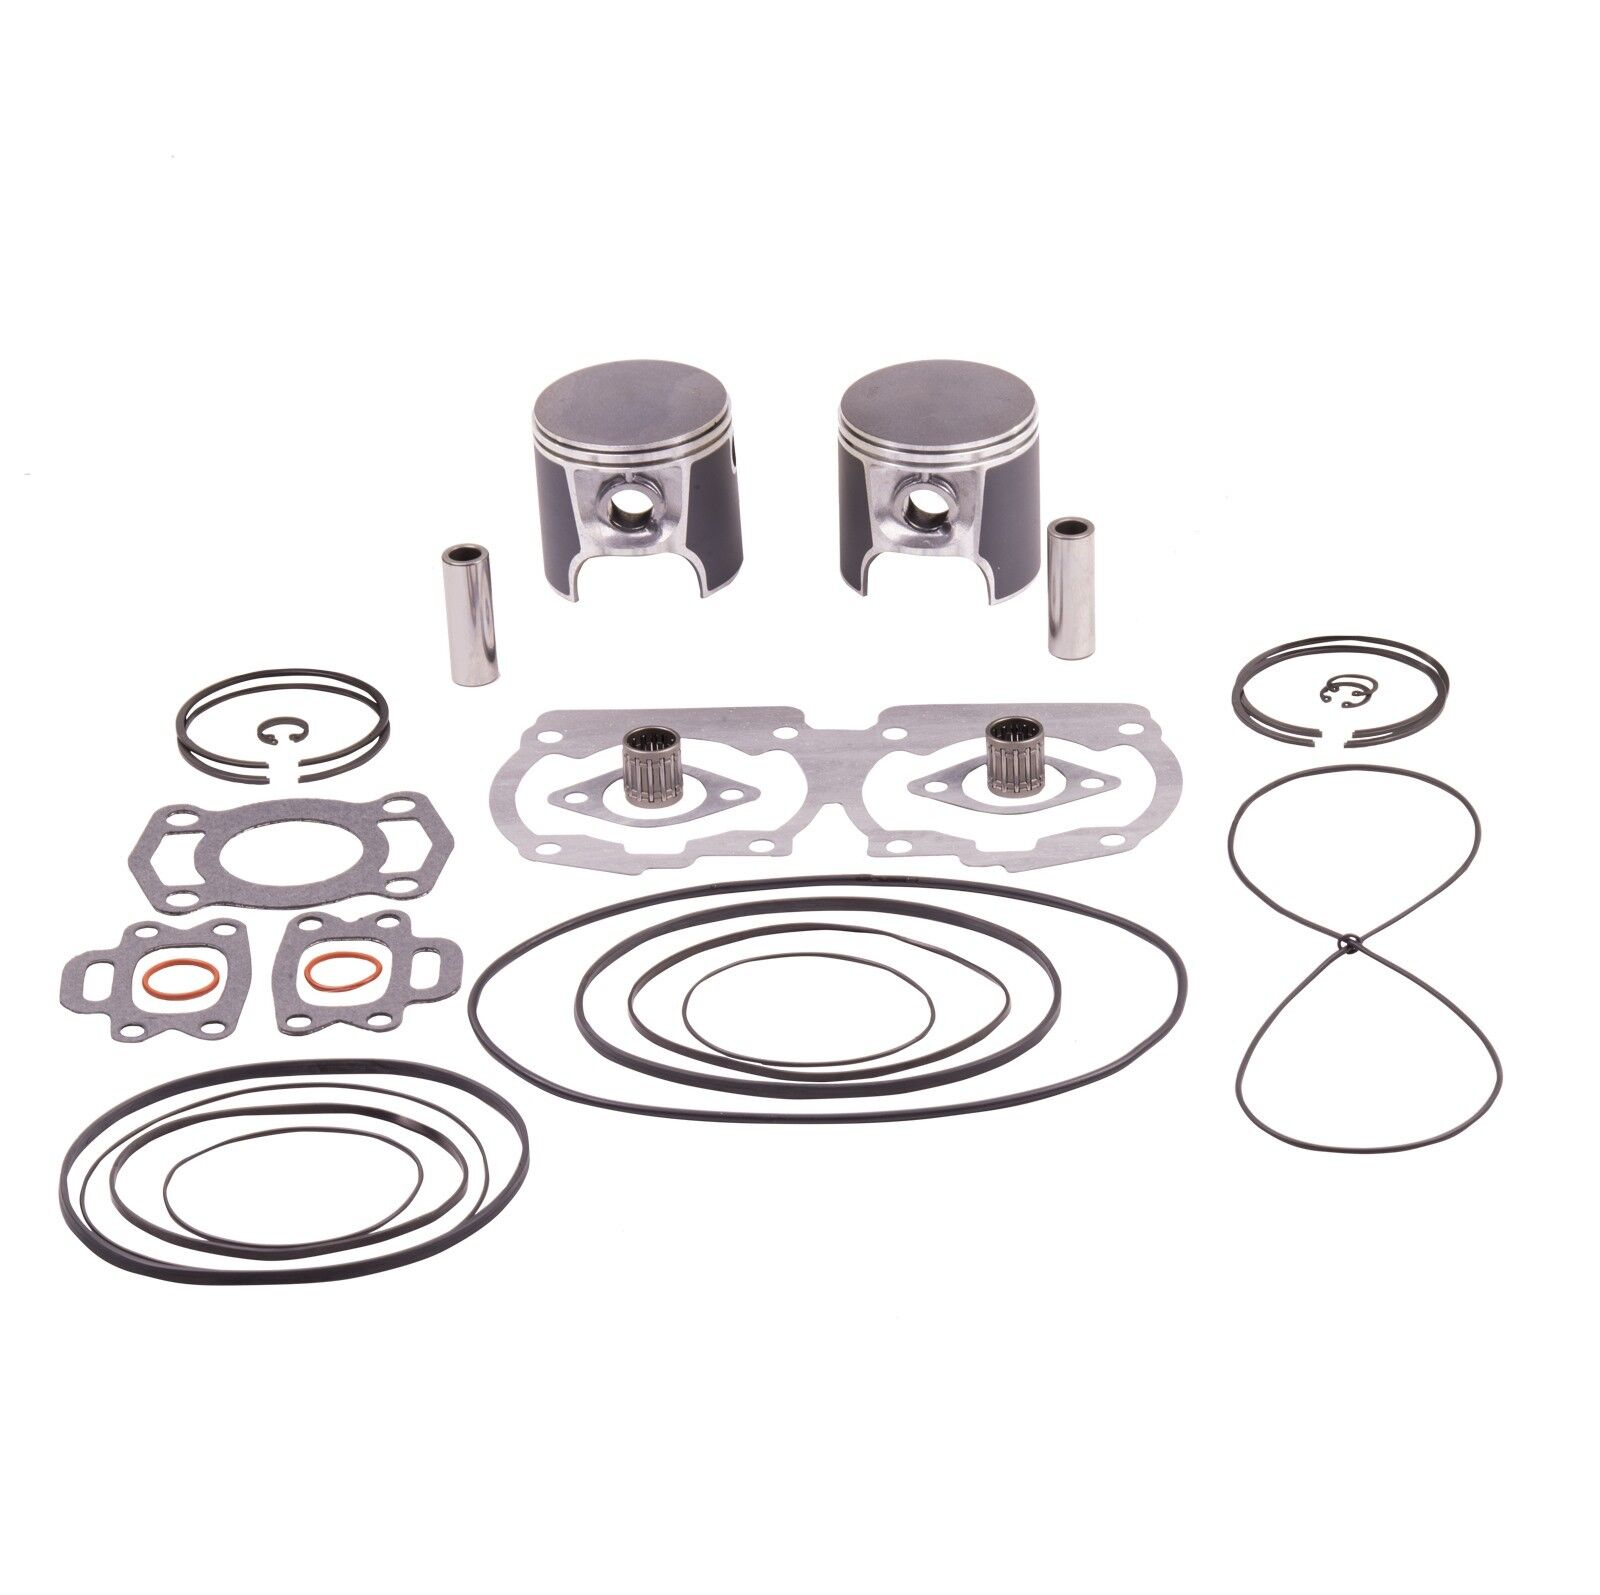 Seadoo Top End Piston Kit 1992-1996 SP SPI GTS 1992-1993